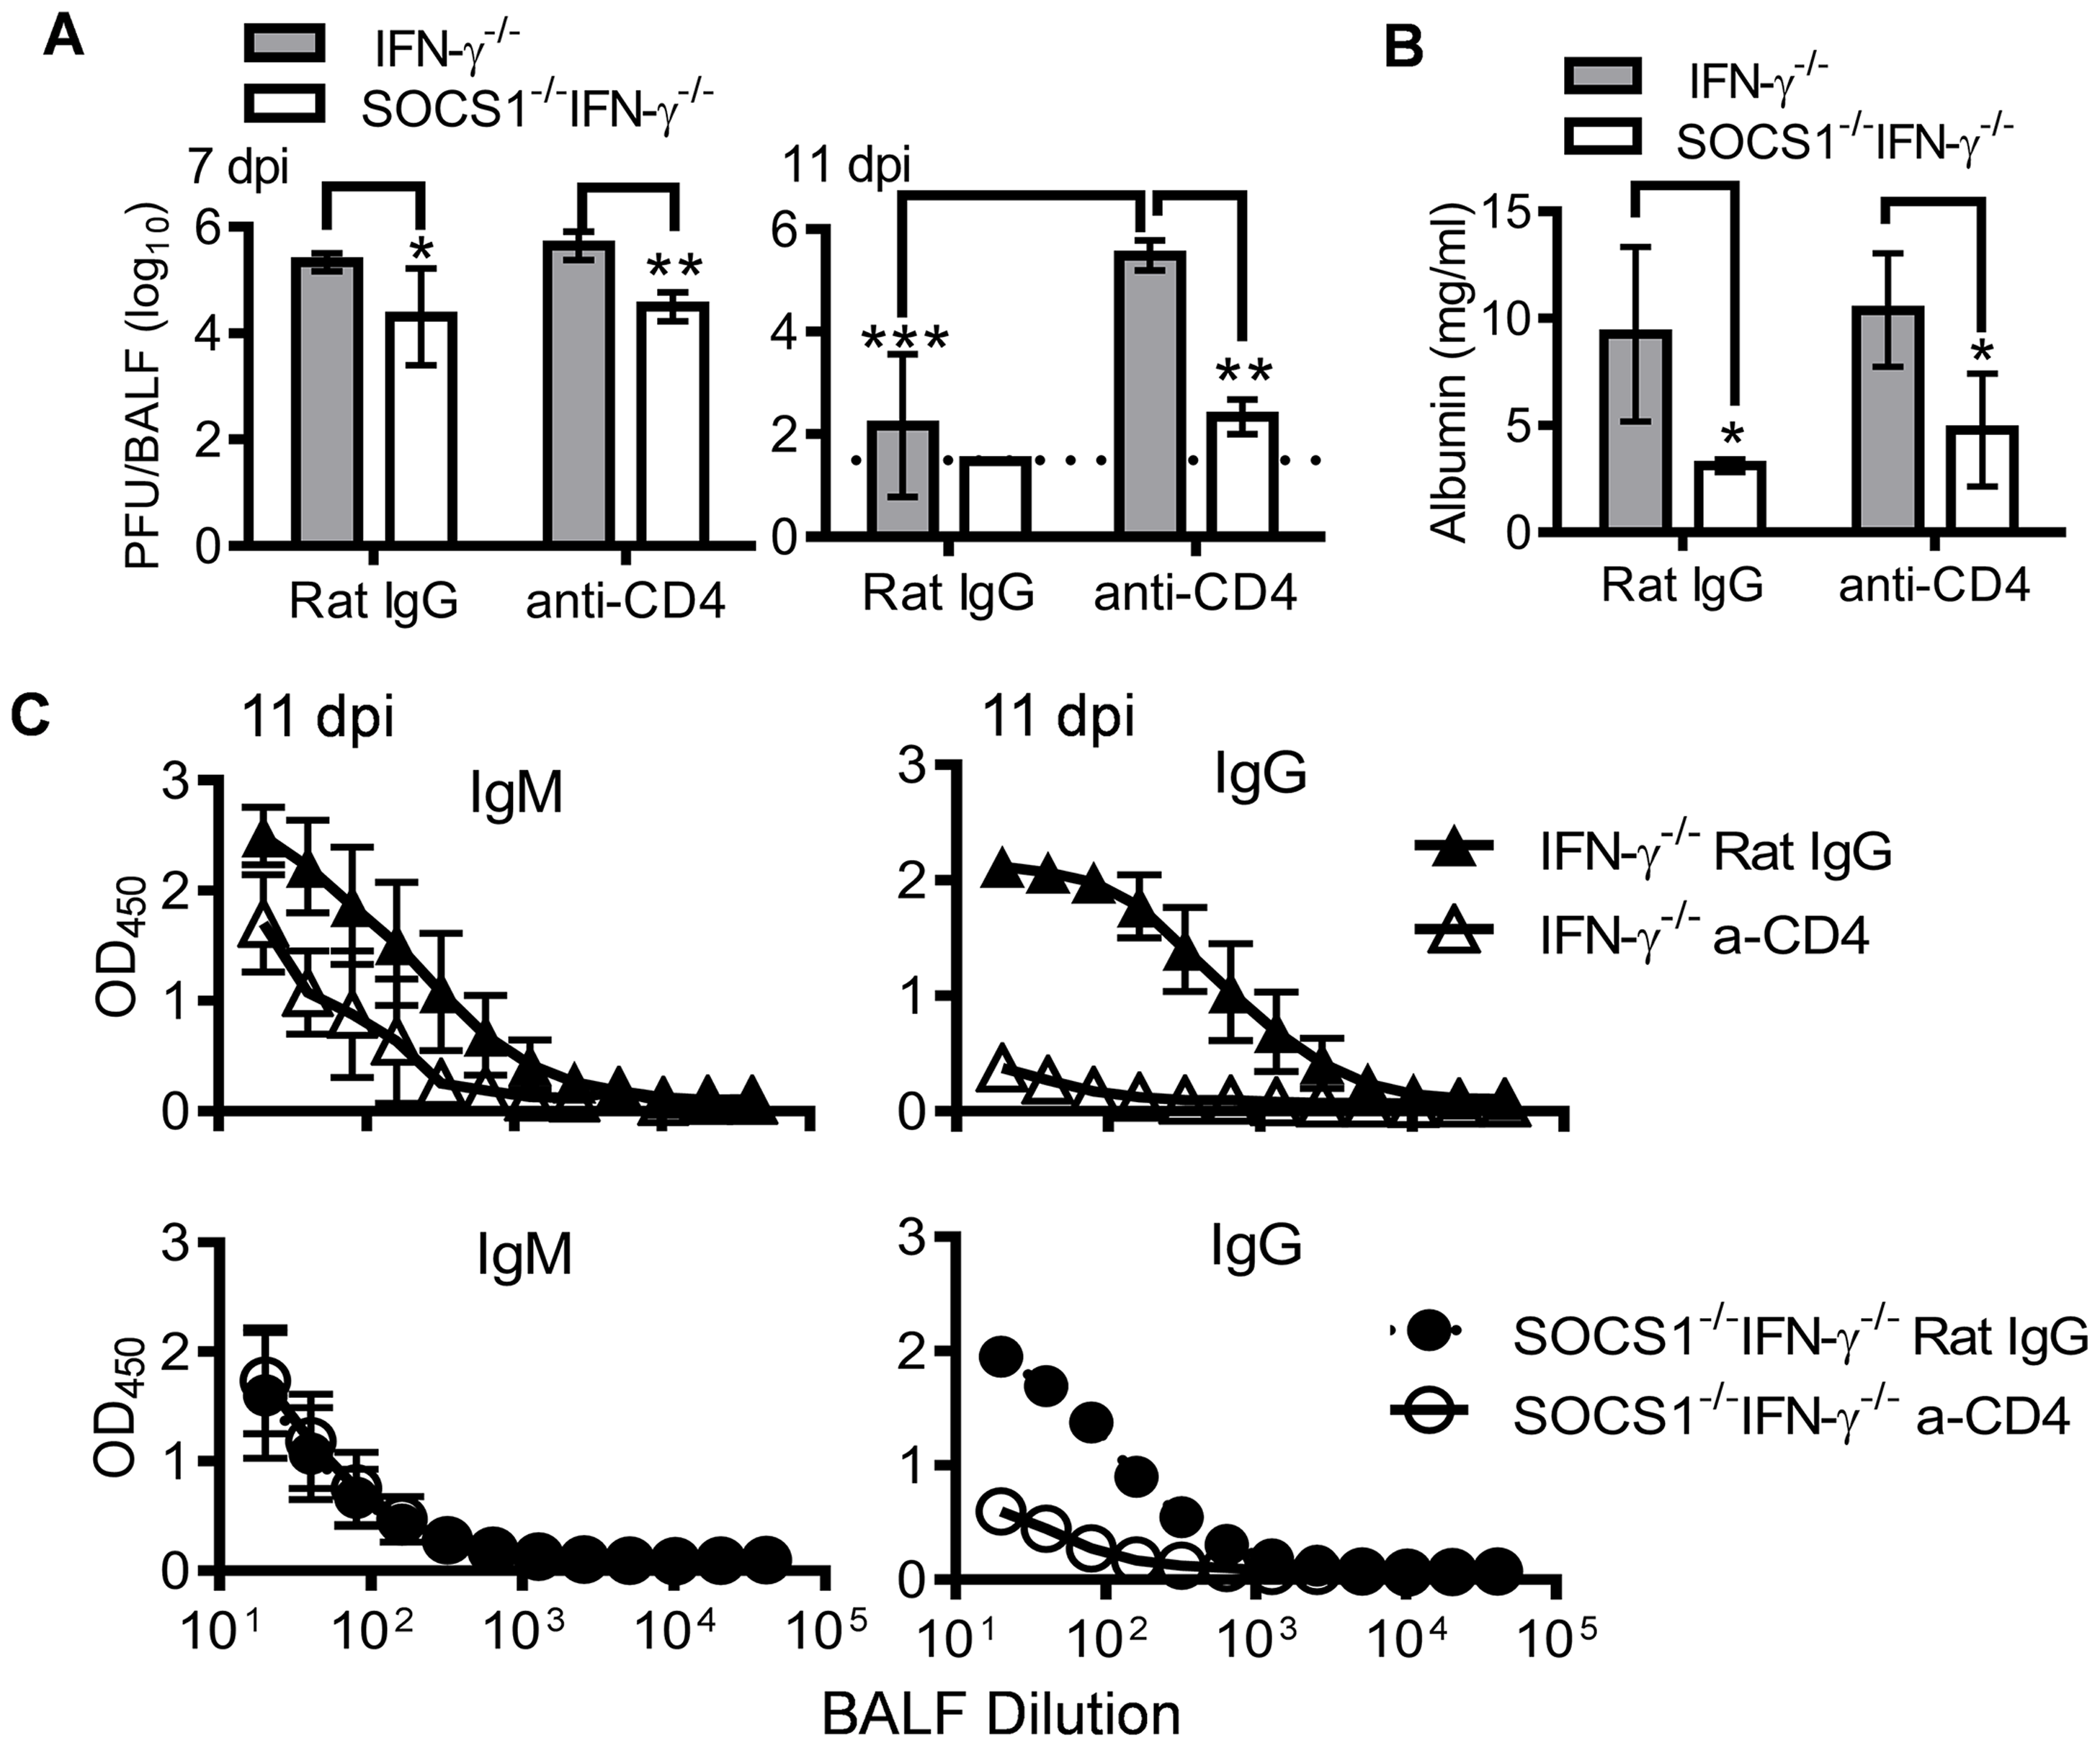 Antiviral immune responses in CD4<sup>+</sup> T cell depleted mice.